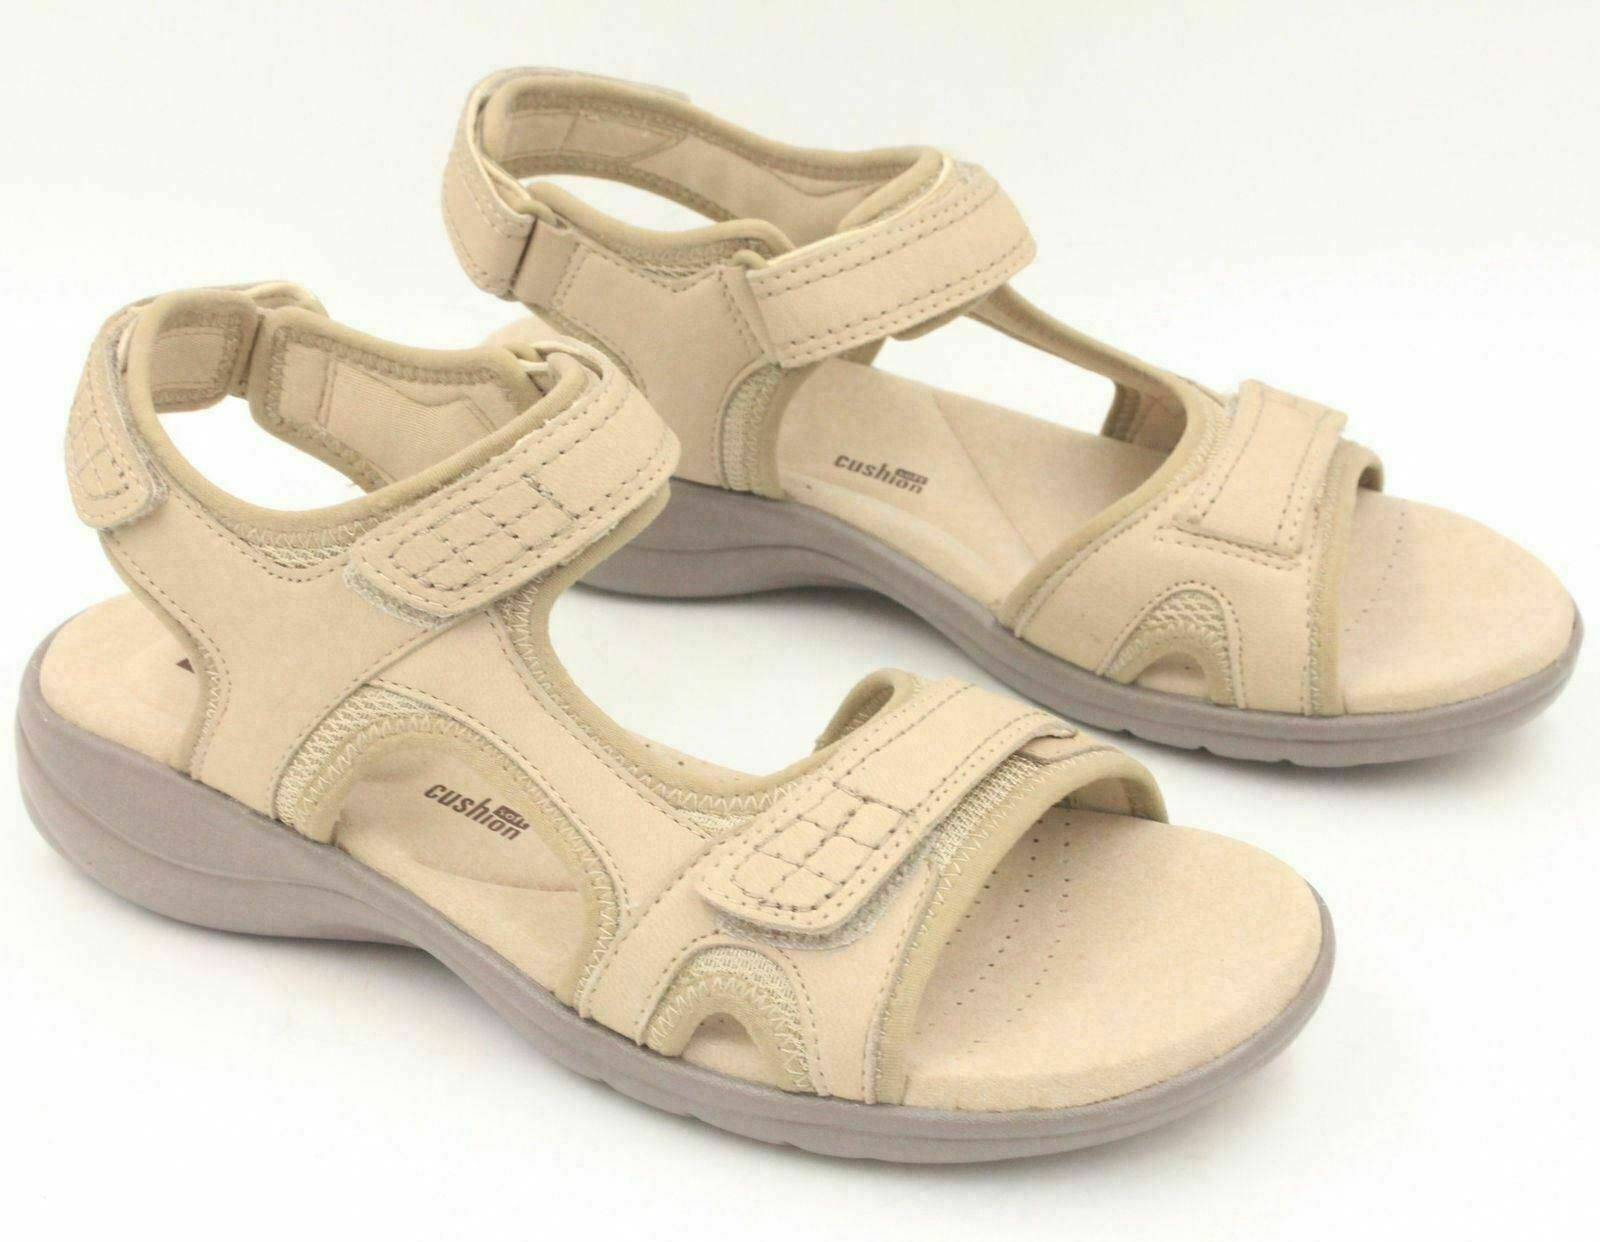 aeed100a669 CLARKS Saylie Jade Women Comfort Adjustable Sandals Size 6M Sand Brown  Leather